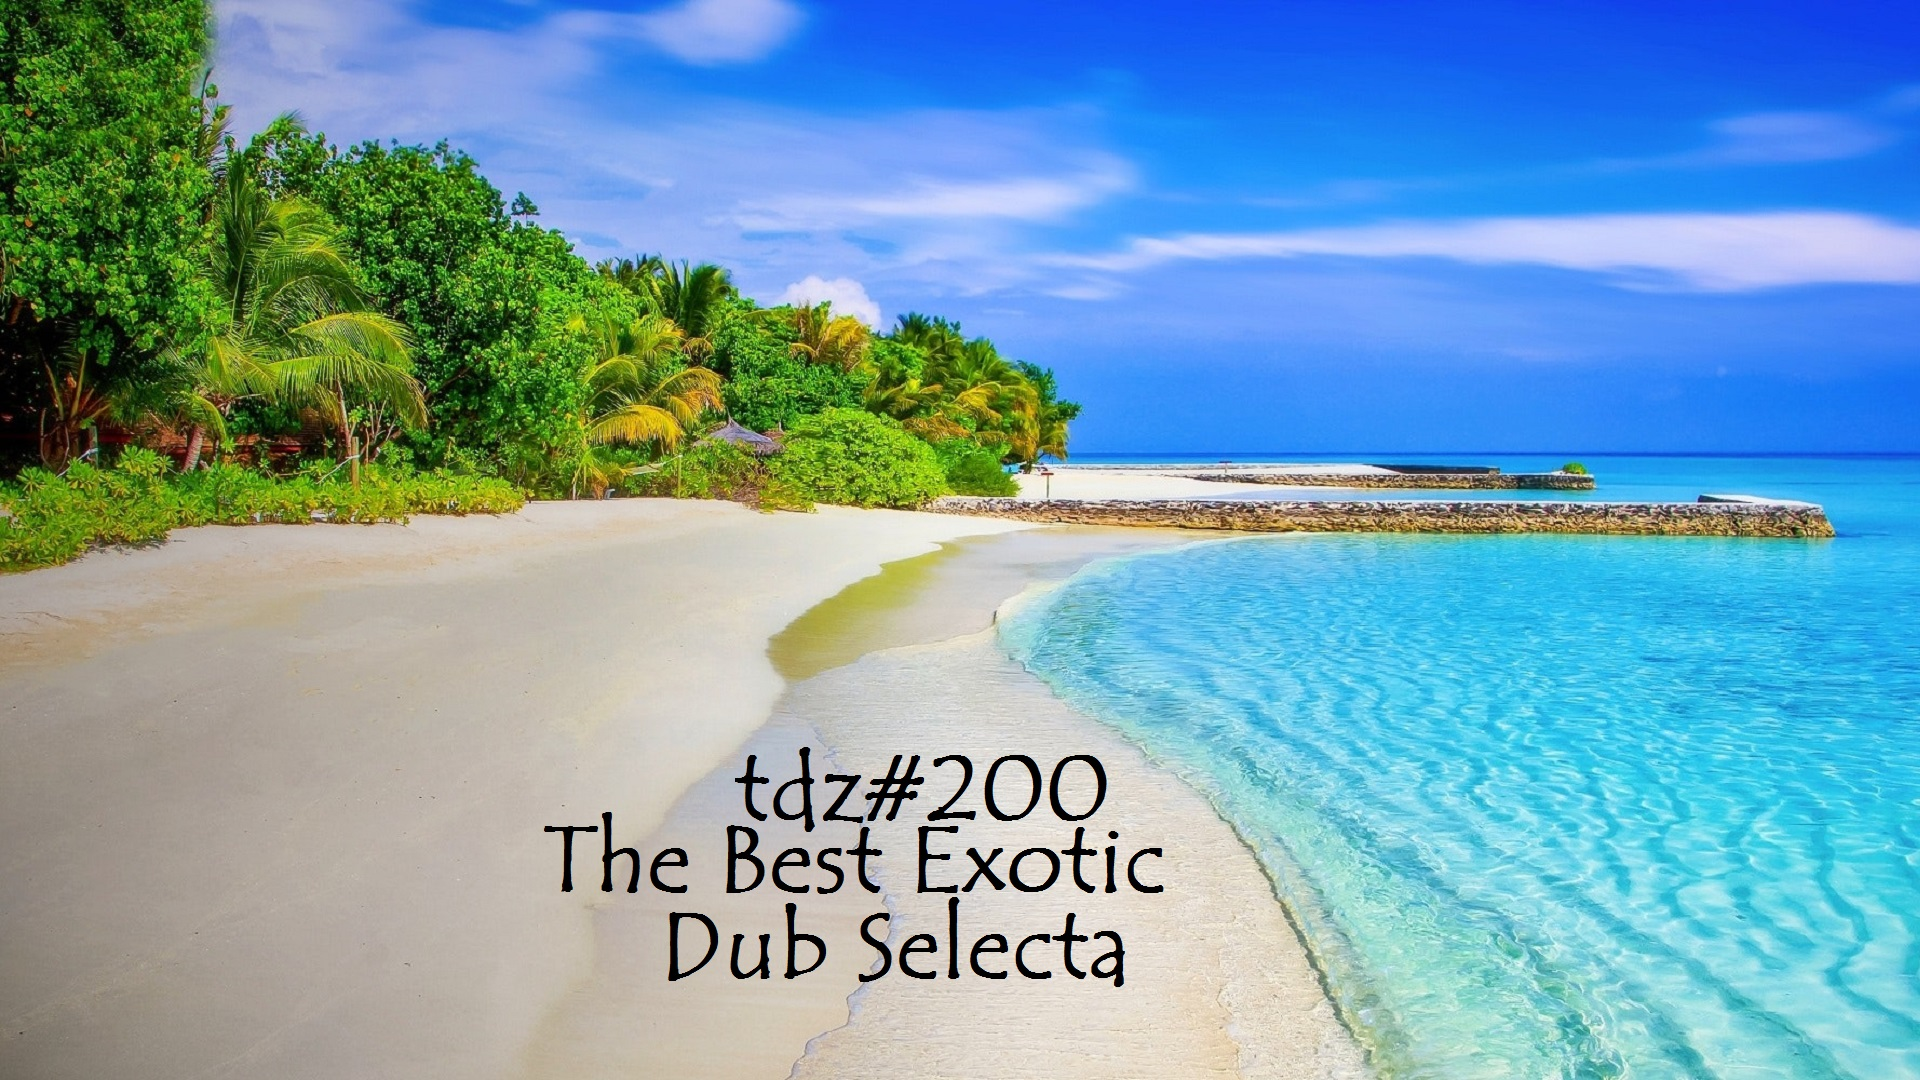 TDZ#200... The Best Exotic Dub Selecta...